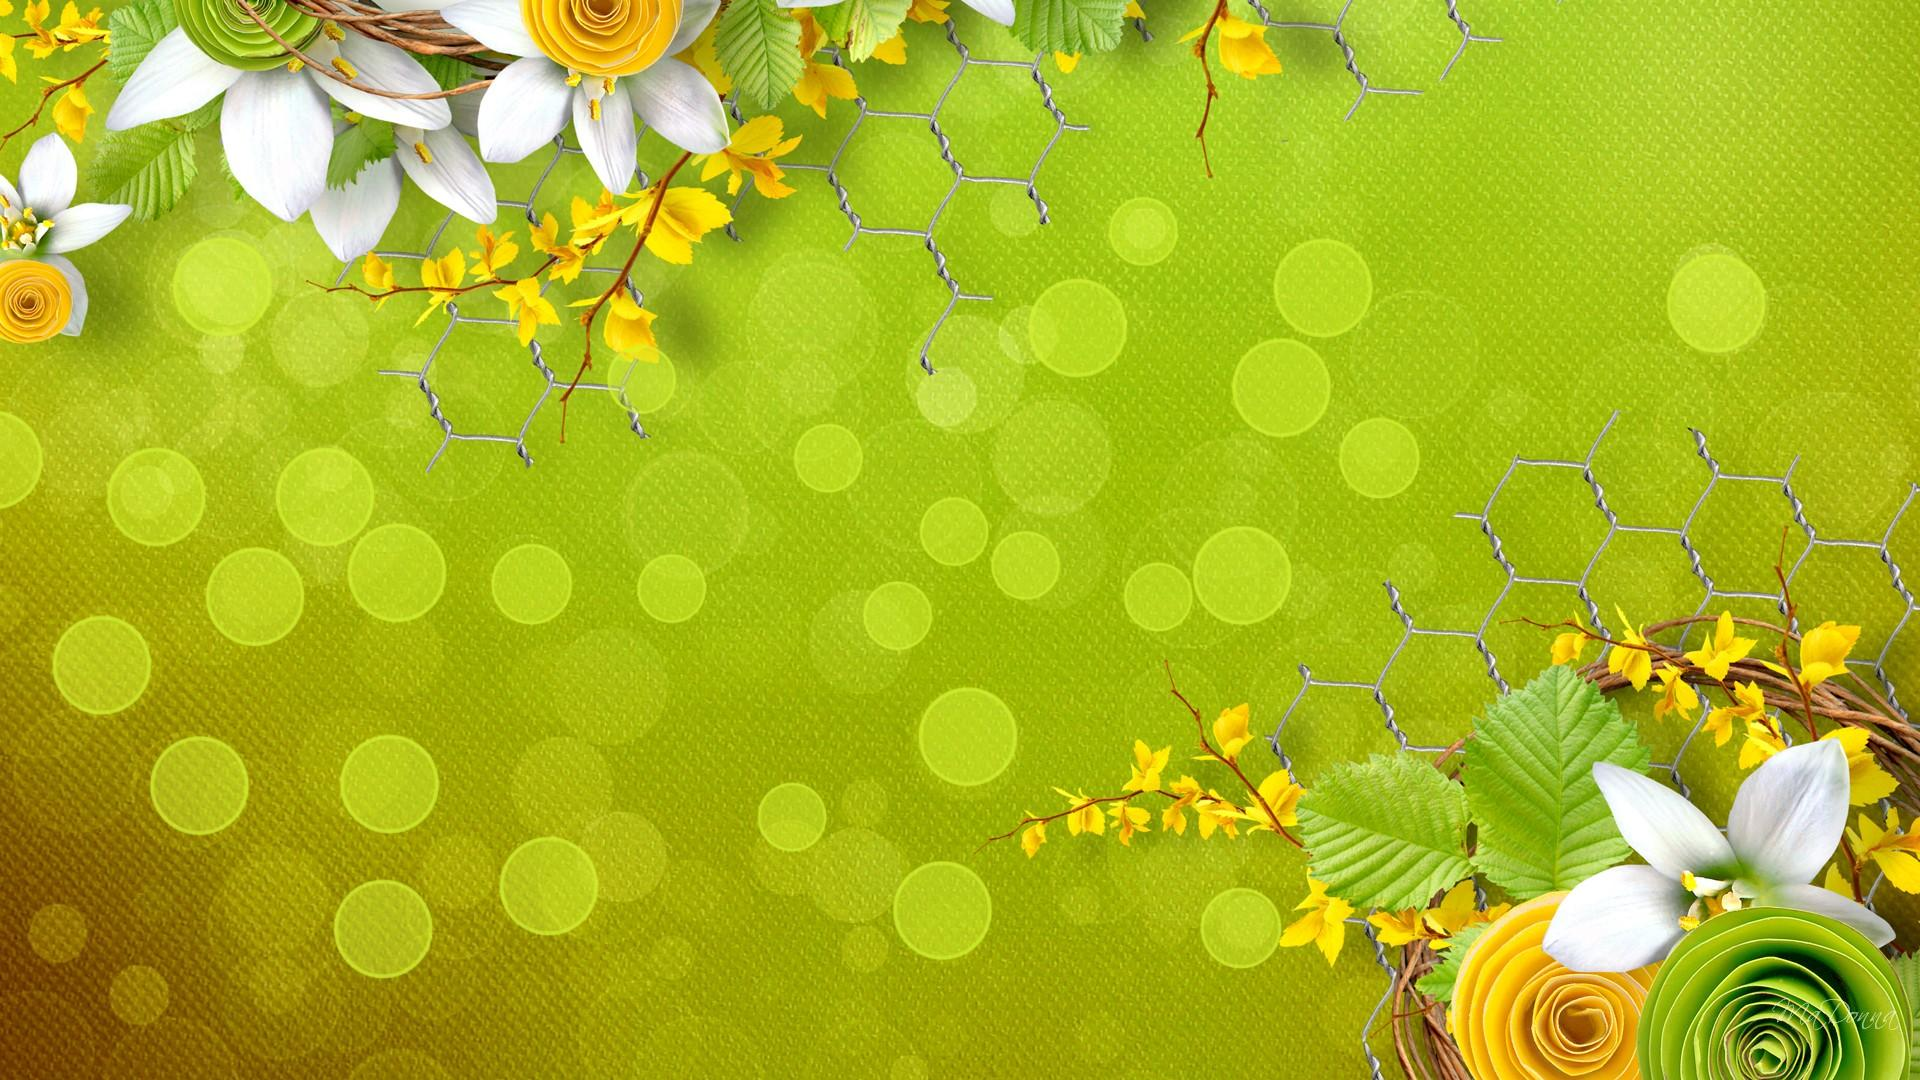 Green And Yellow Flowers Collage Hd Wallpaper Wallpaper List 1920x1080